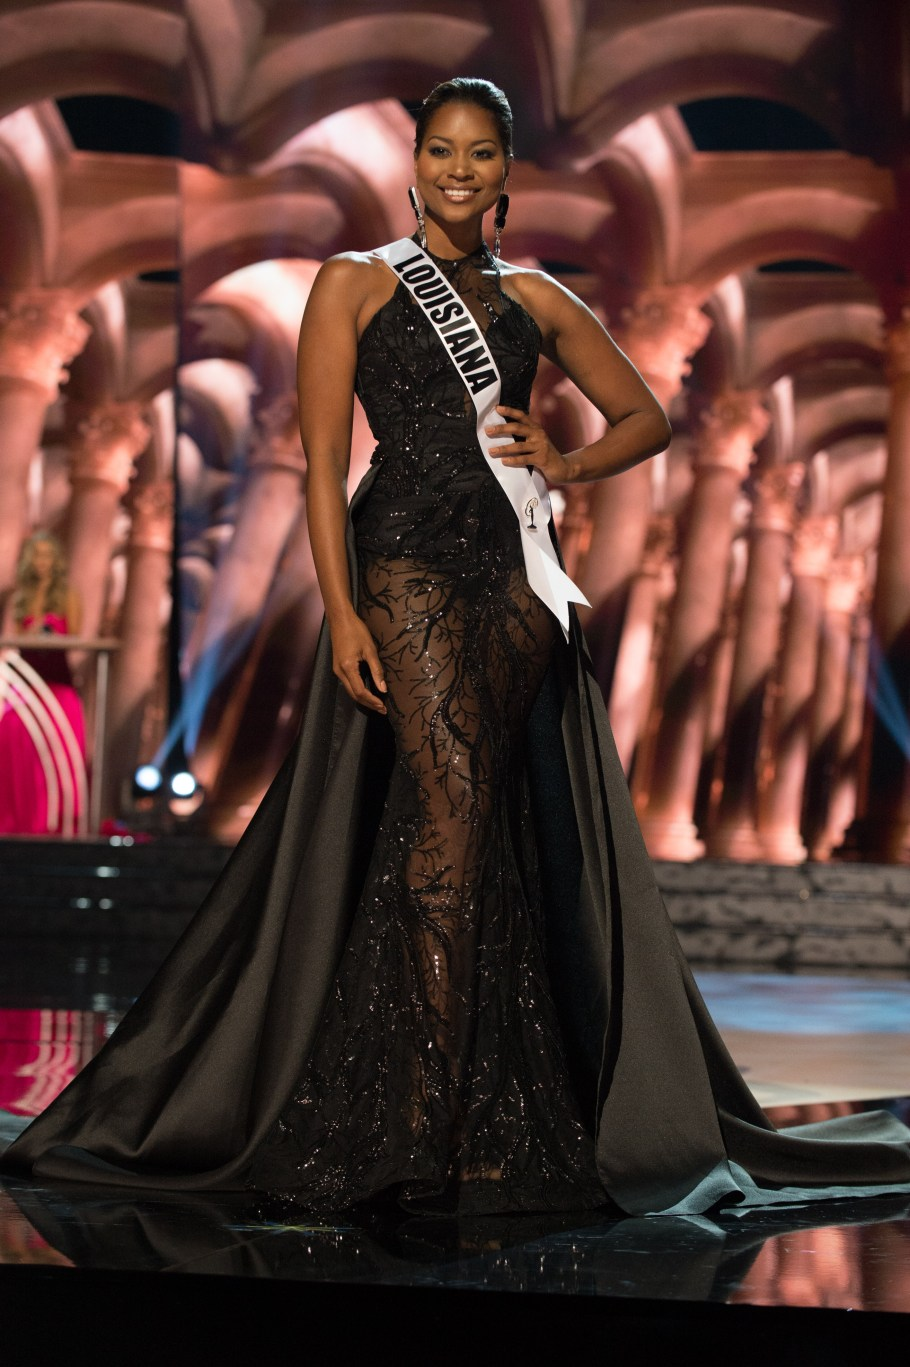 Maaliayh Papillion, Miss Louisiana USA 2016 is one of the best in Best and the worst Evening Gowns at Miss USA 2016 Preliminary show